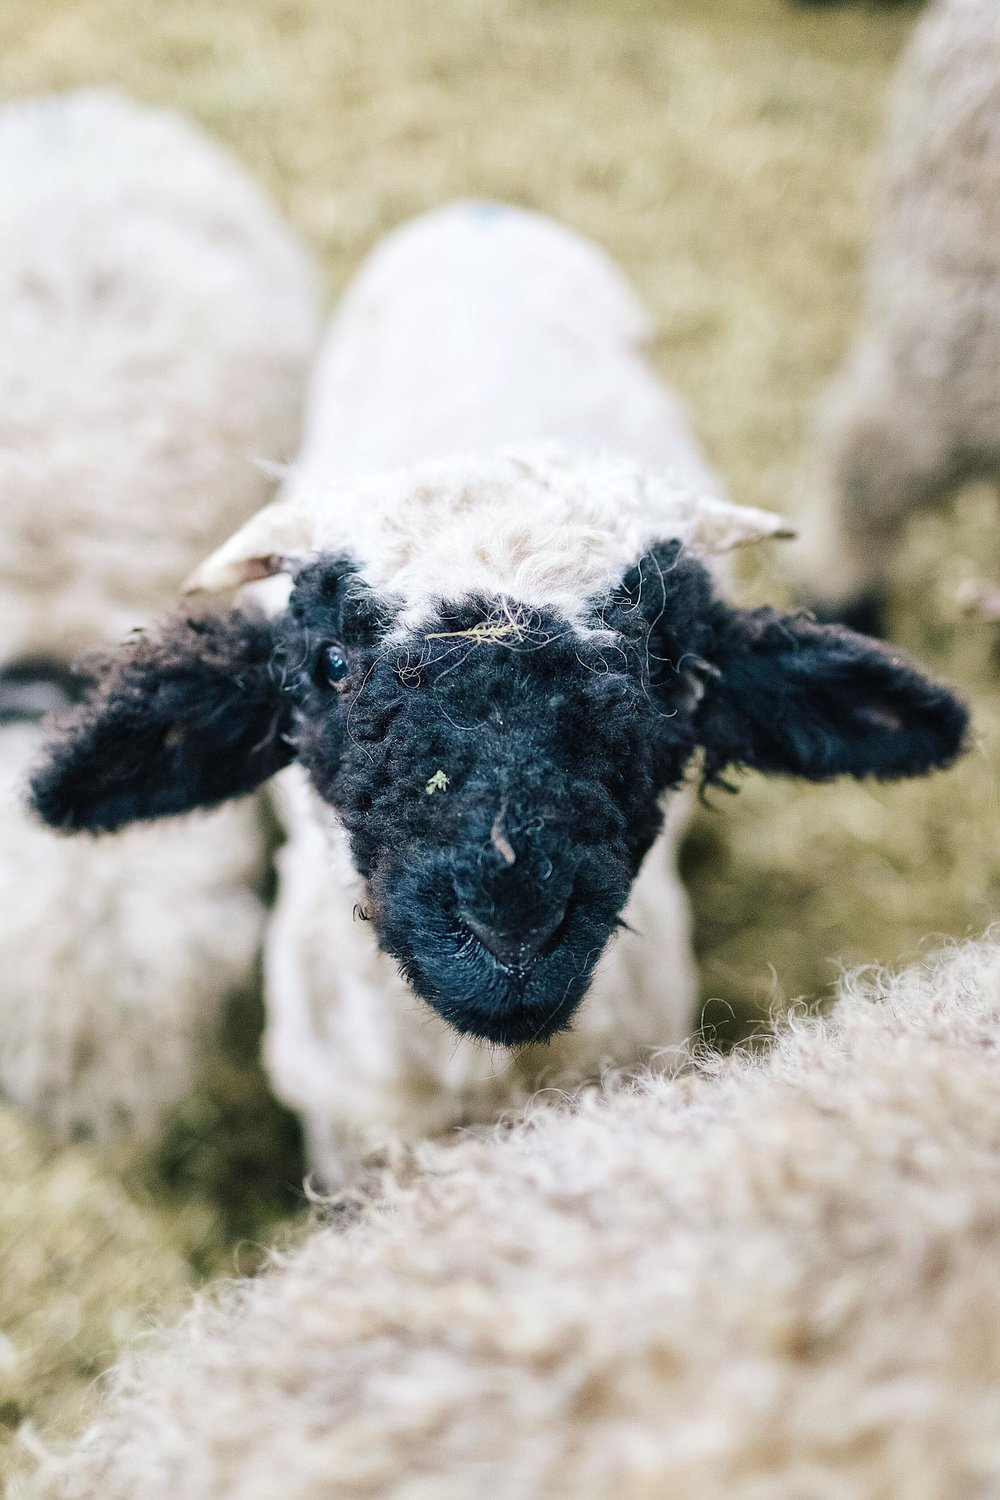 A baby black nose sheep in Switzerland